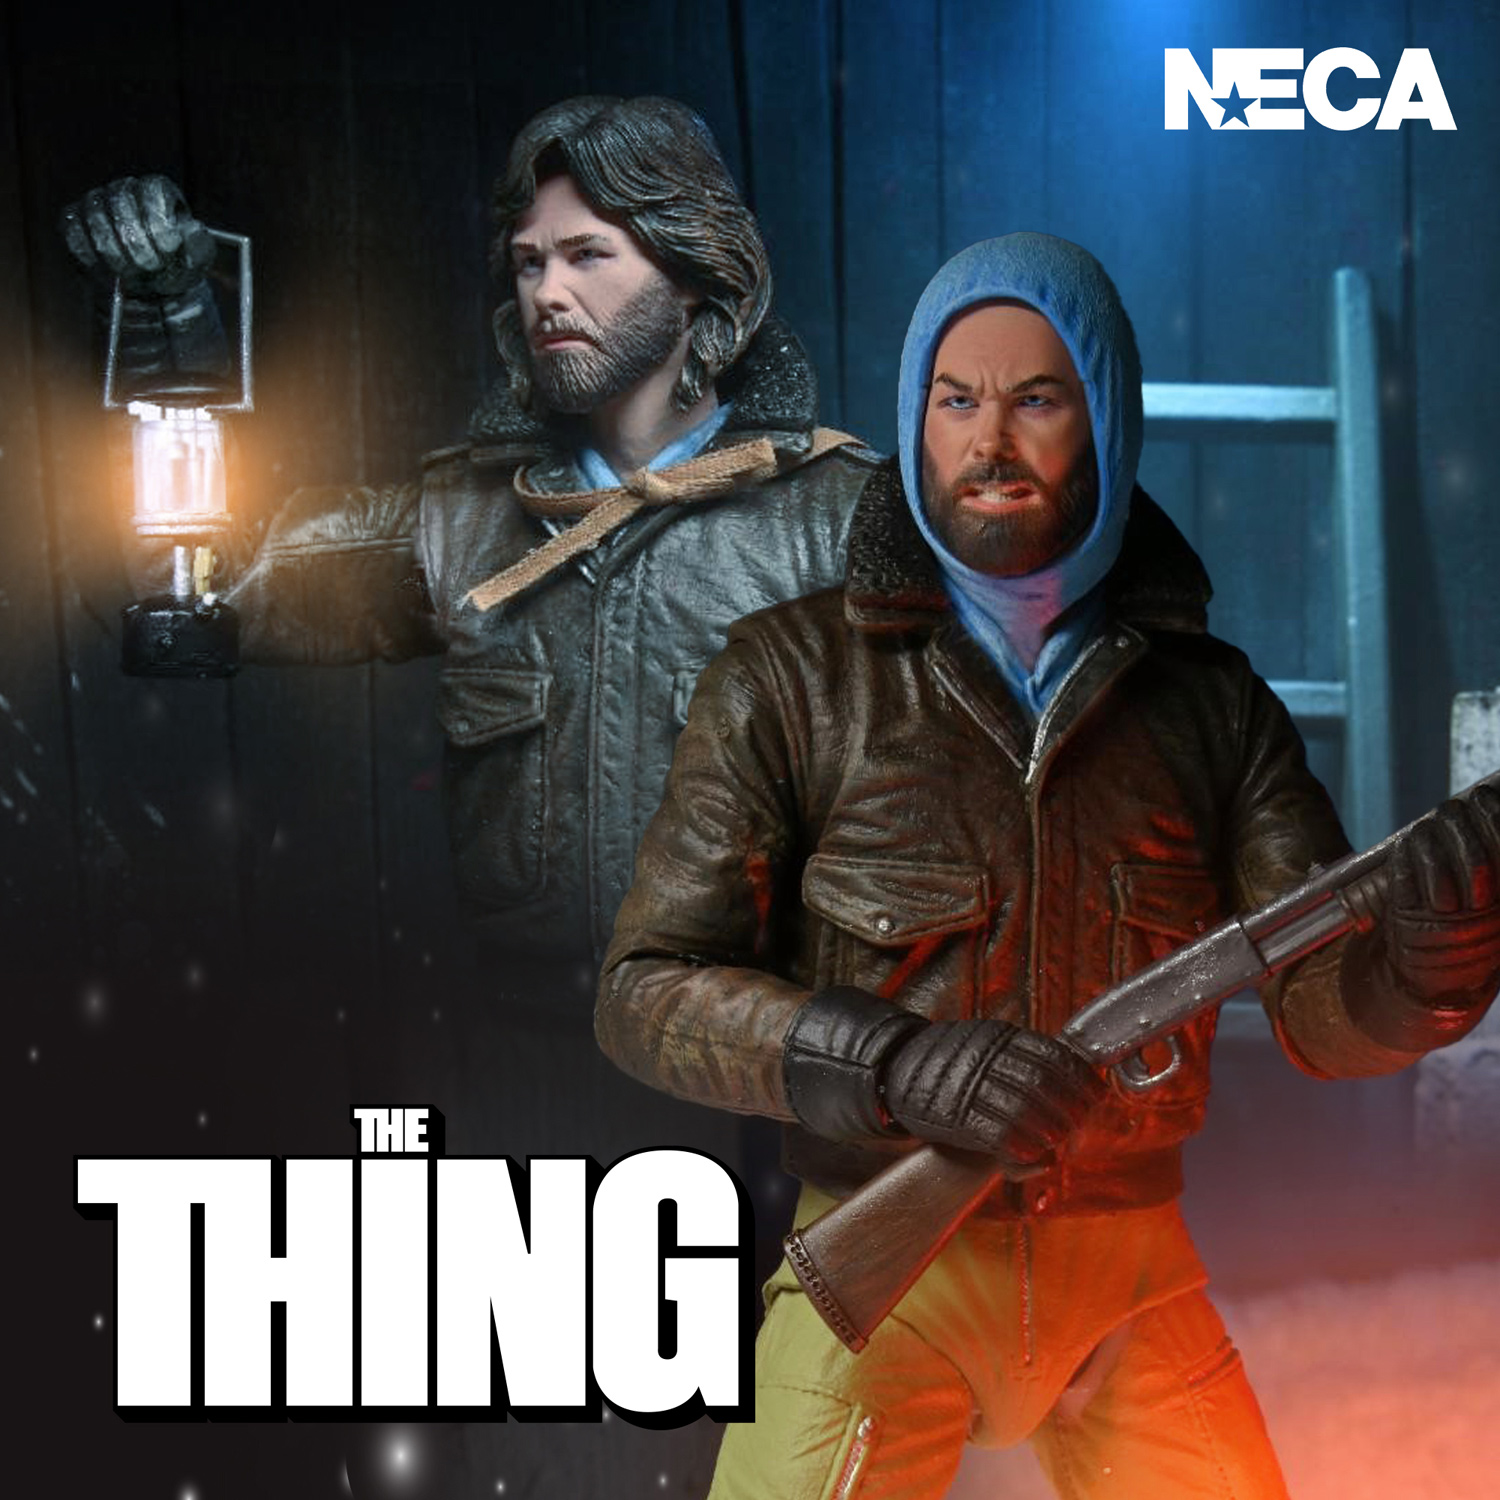 neca-the-thing-ultimate-rj-macready-action-figure-preorder